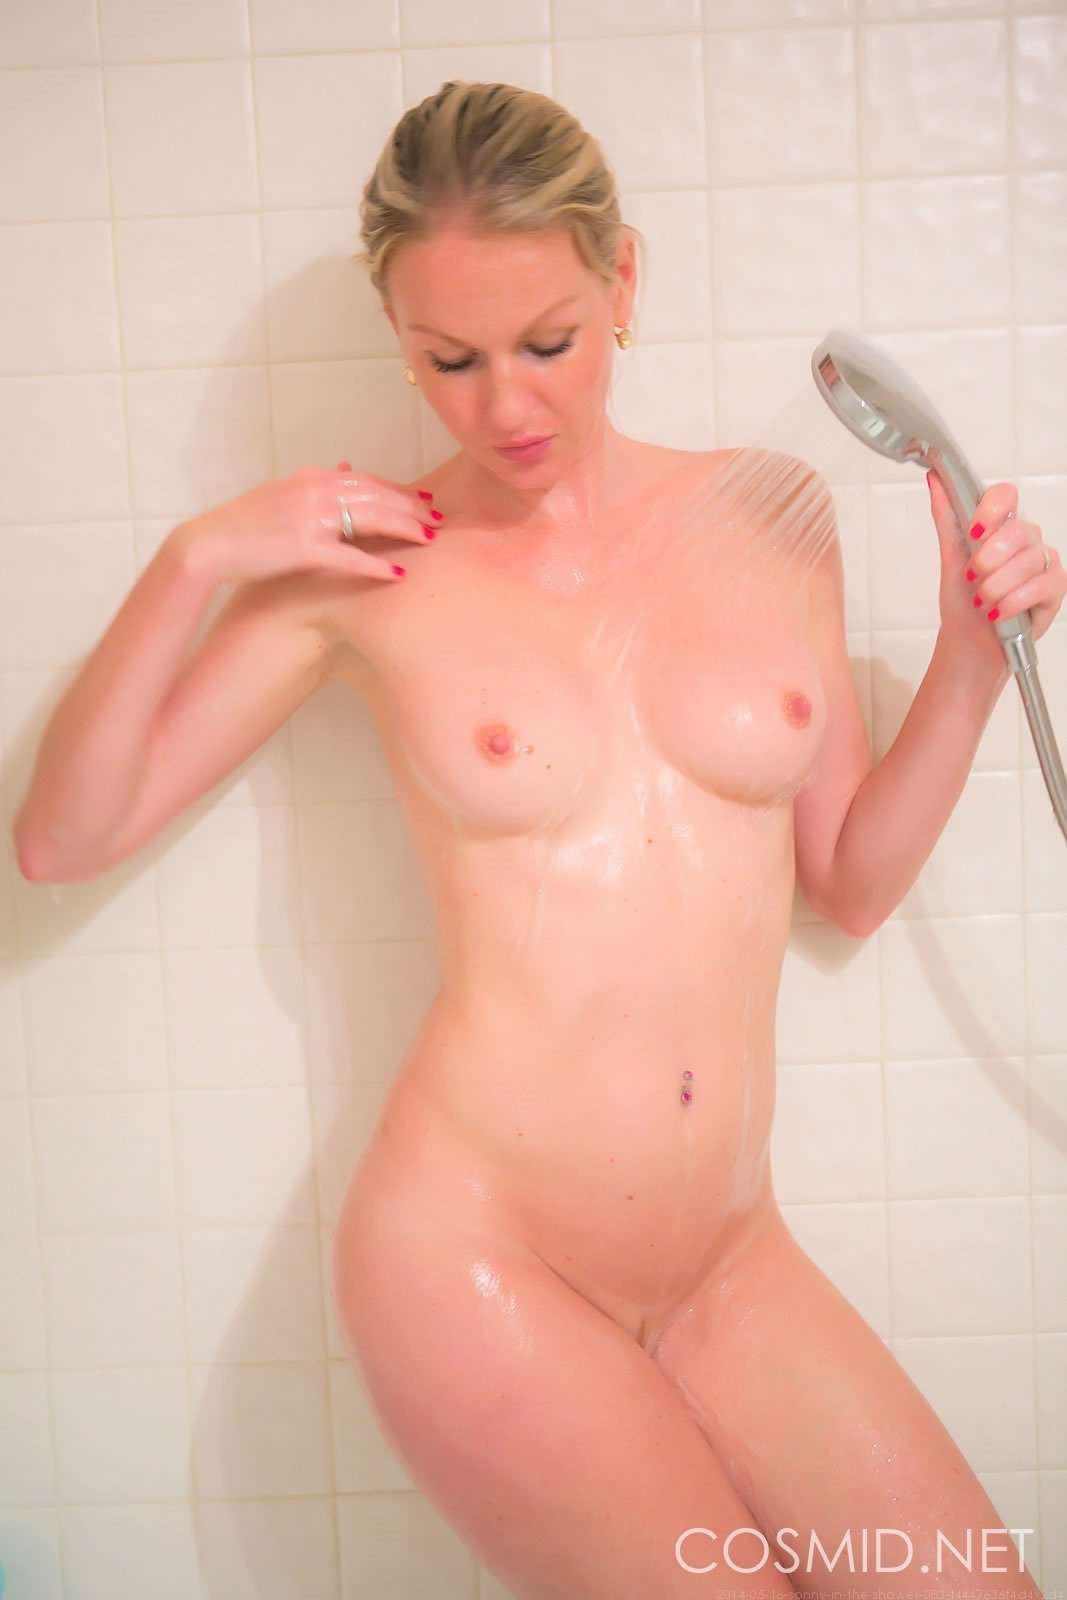 Sonny Naked Shower Fine Hotties Hot Naked Girls Celebrities And Hd Porn Videos